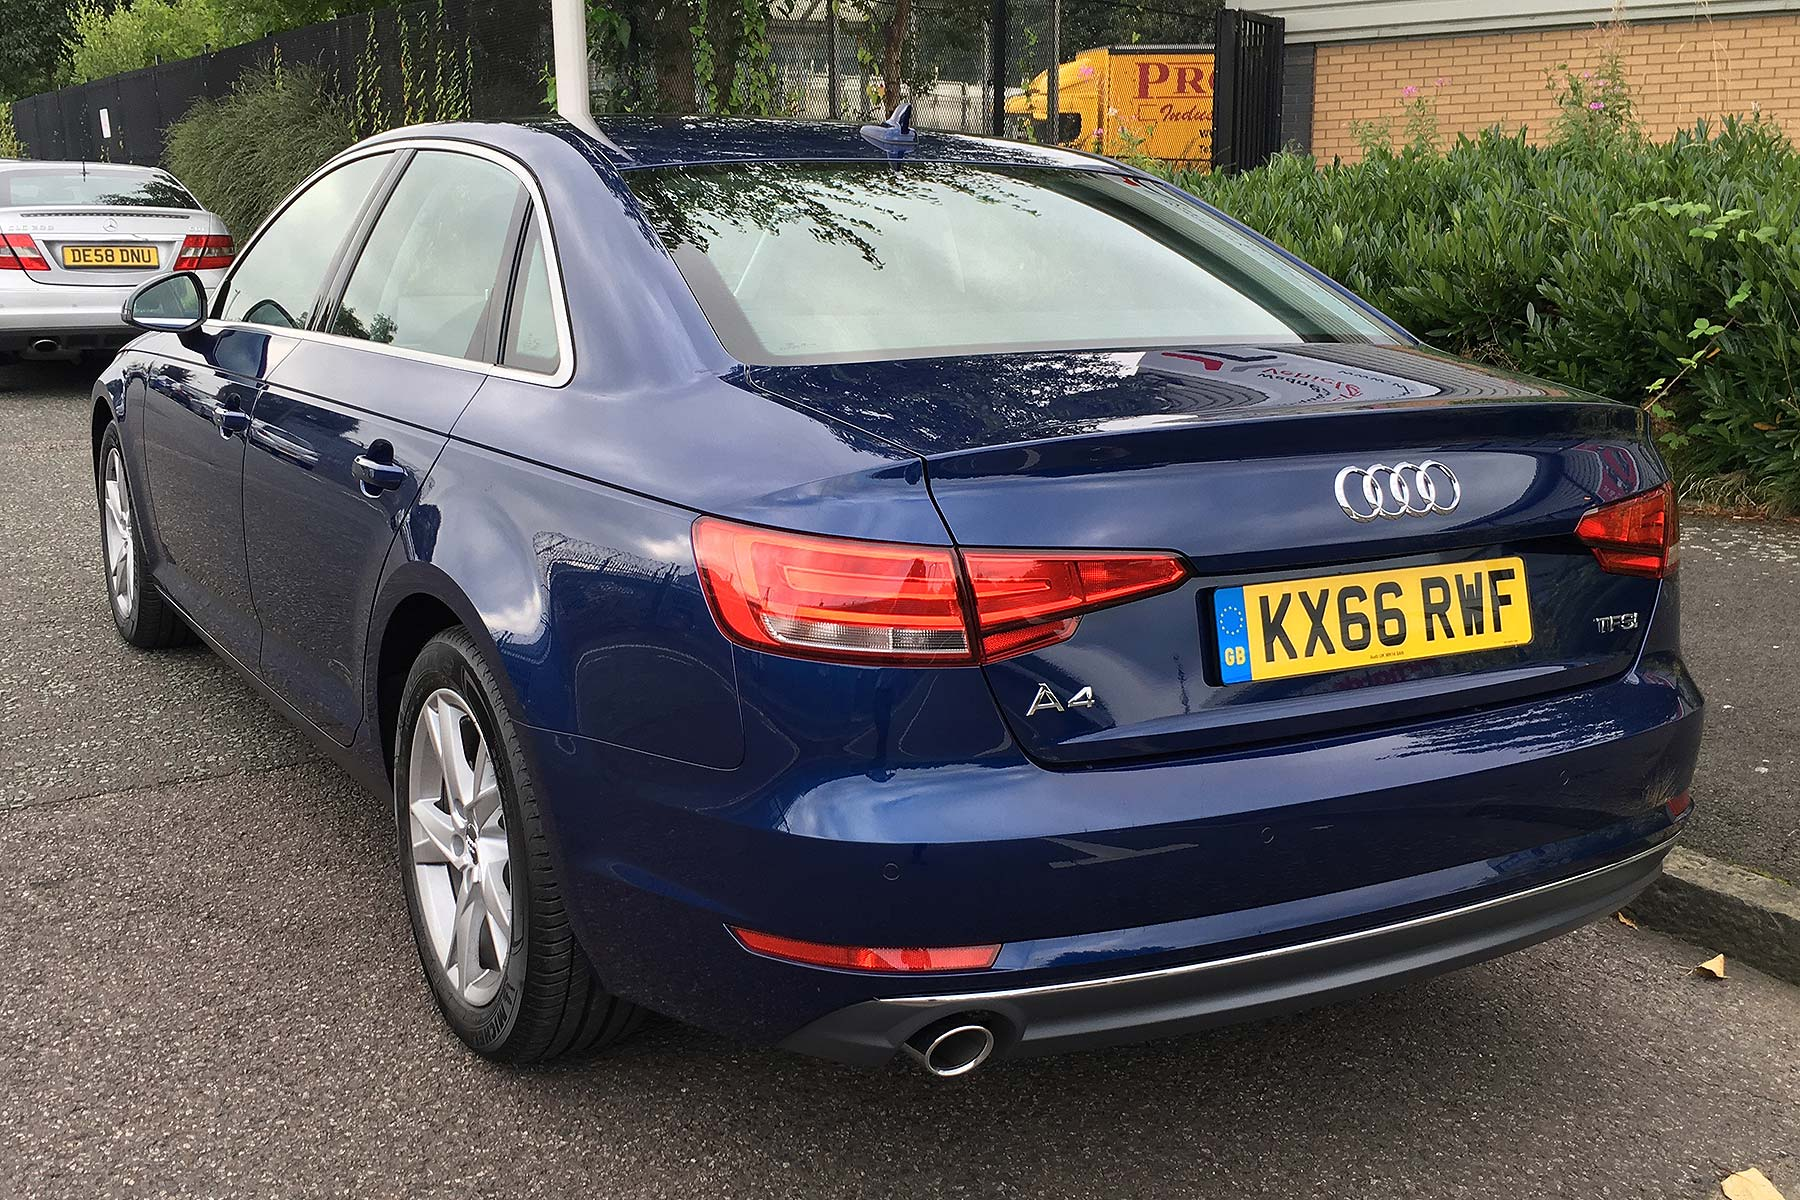 Audi A4 1.4 TFSI 150 long-term review